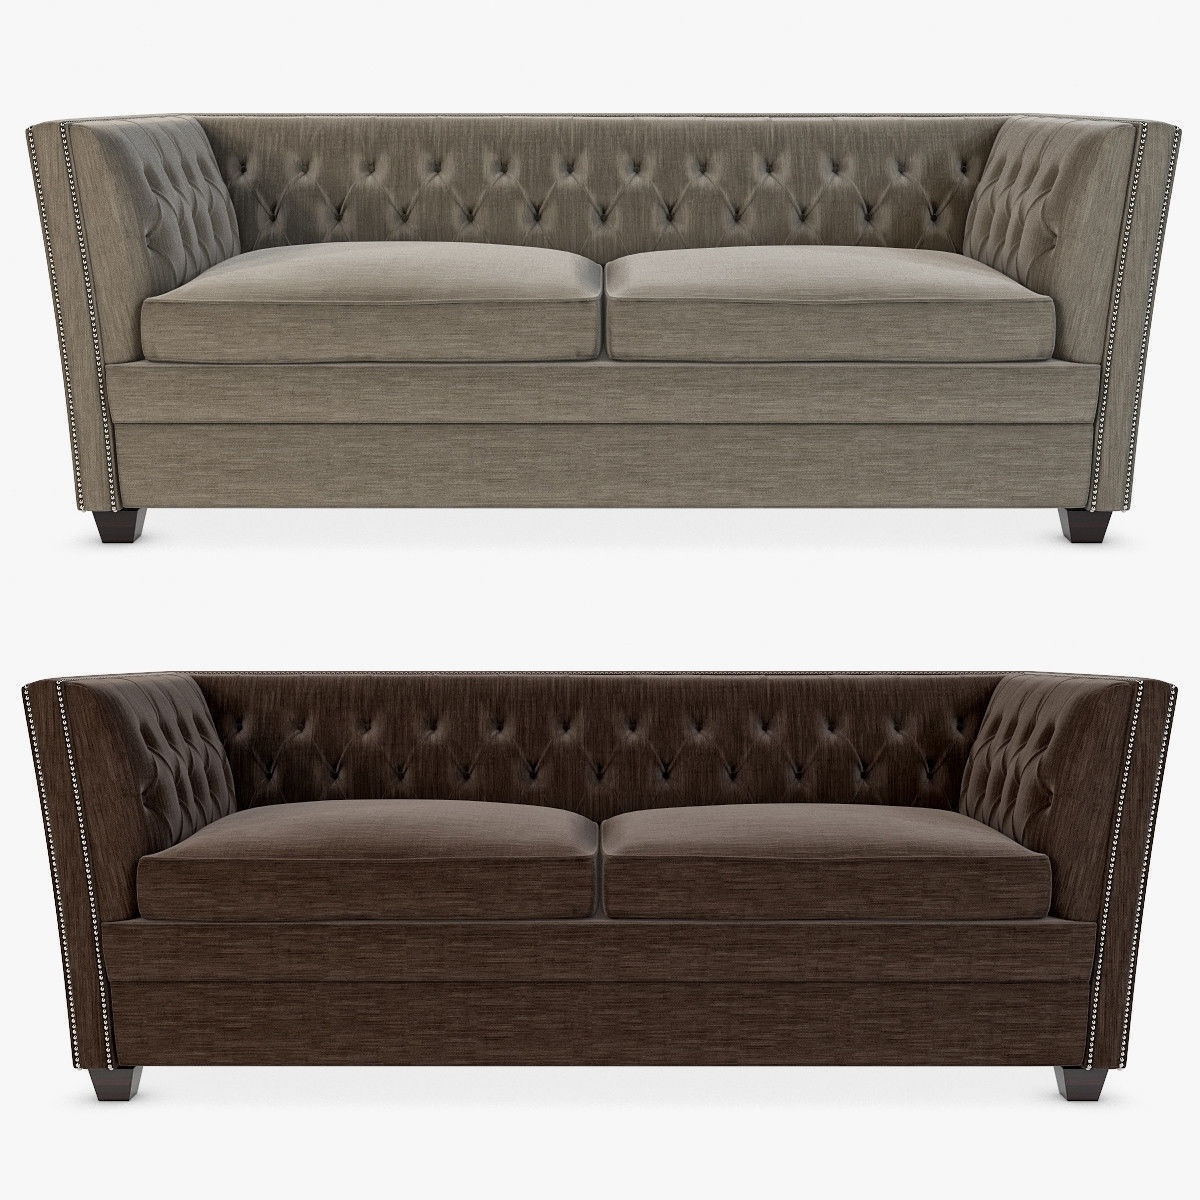 Mitchell Gold Sofas Within Most Recently Released Mitchell Gold And Bob Williams – Fiona Super 3d Model (View 12 of 20)